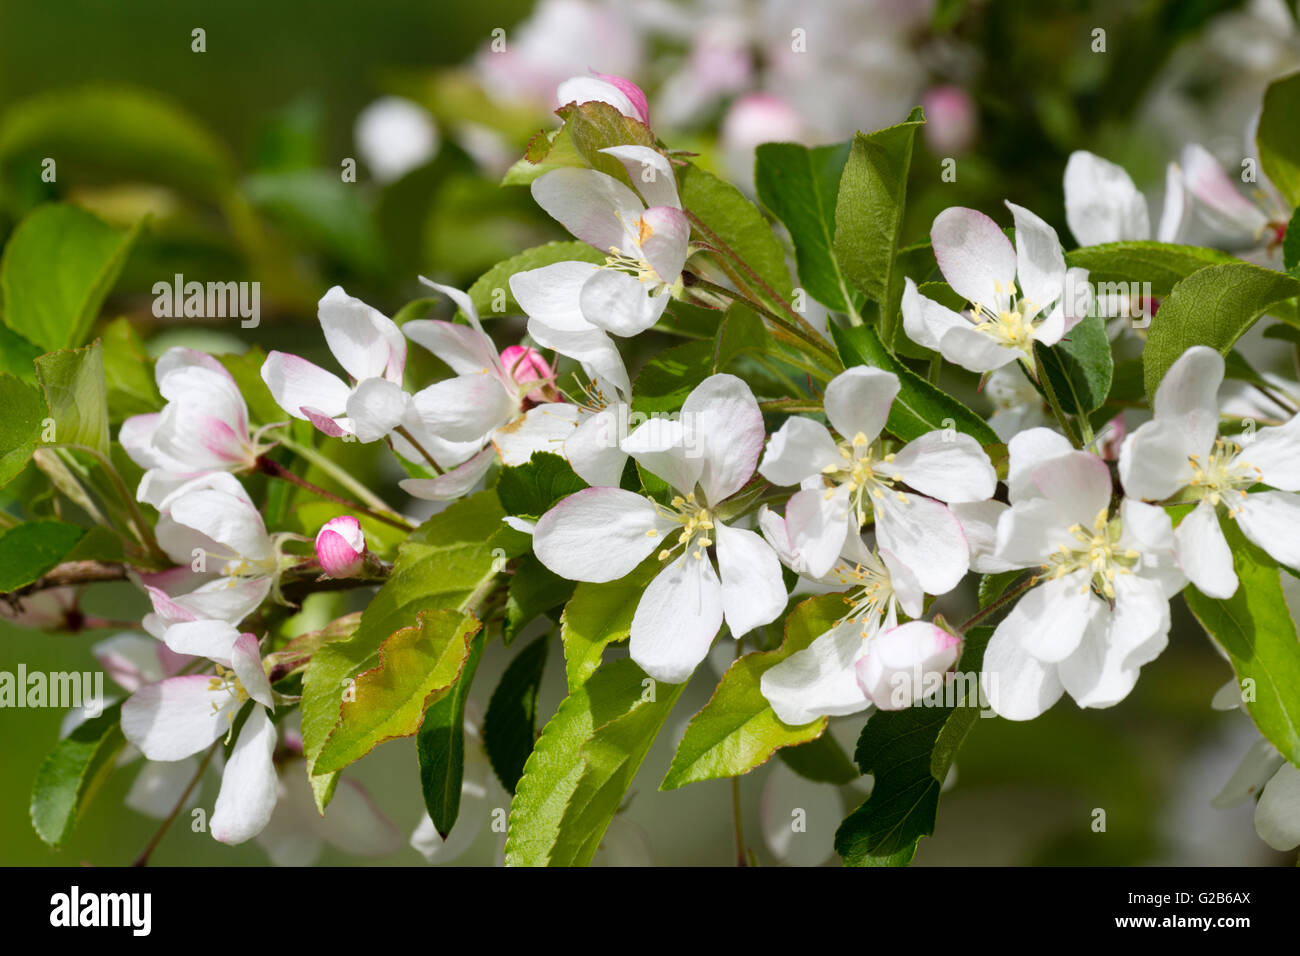 White Spring Flowers Of The Ornamental Crab Apple Tree Malus Stock